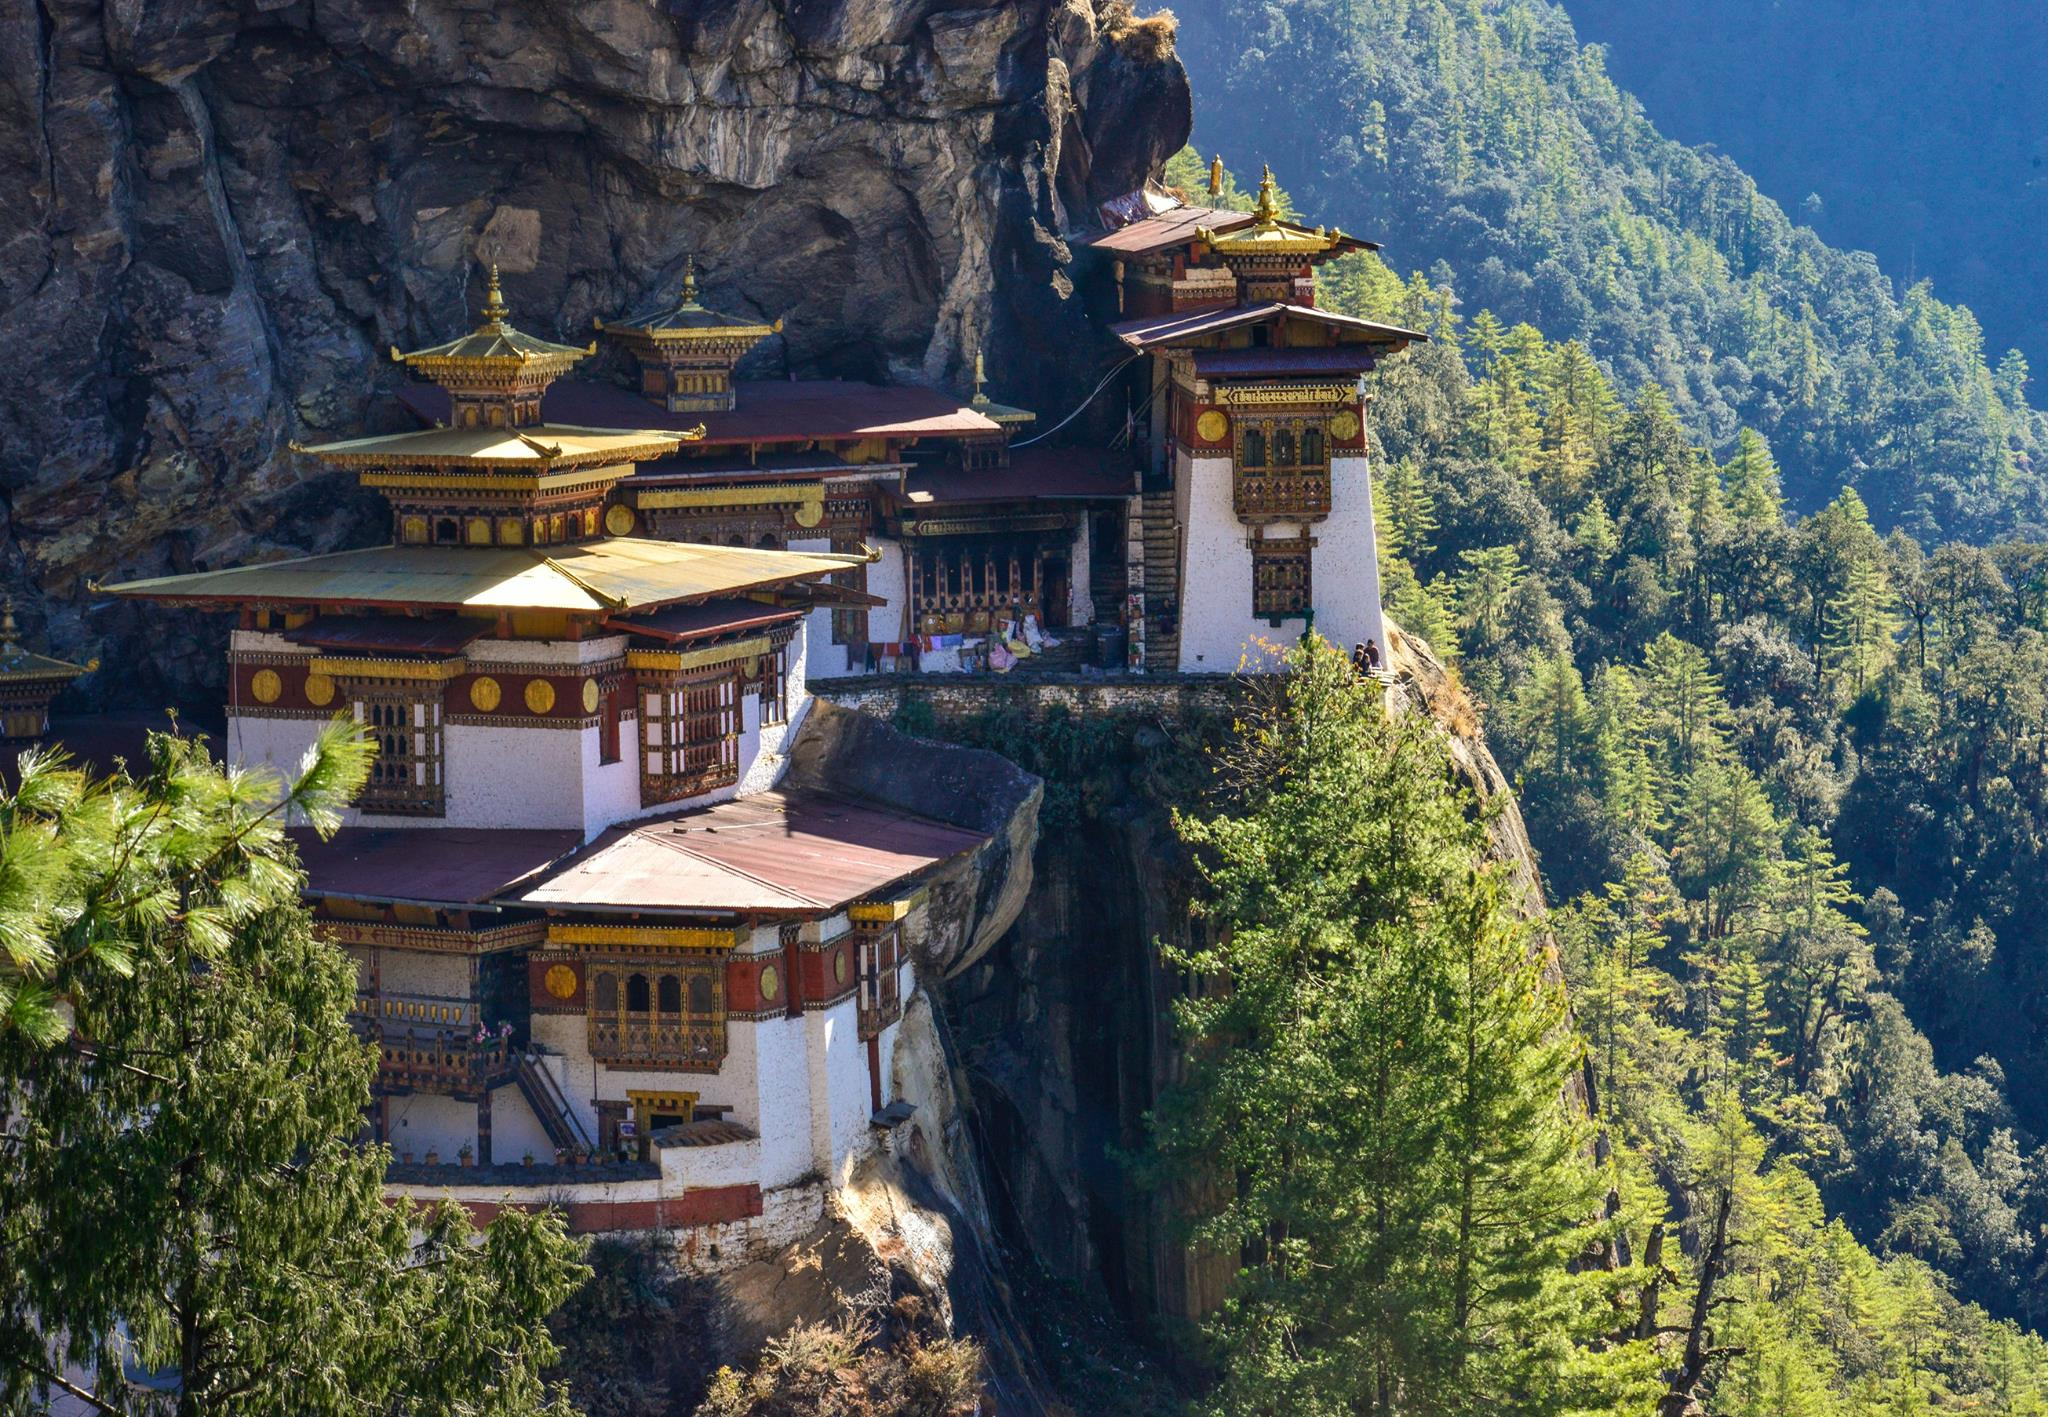 Nestled between two gigantic neighbors, the tiny kingdom of Bhutan is a majestic, serene, and breathtakingly beautiful hideaway high in the Himalayas.